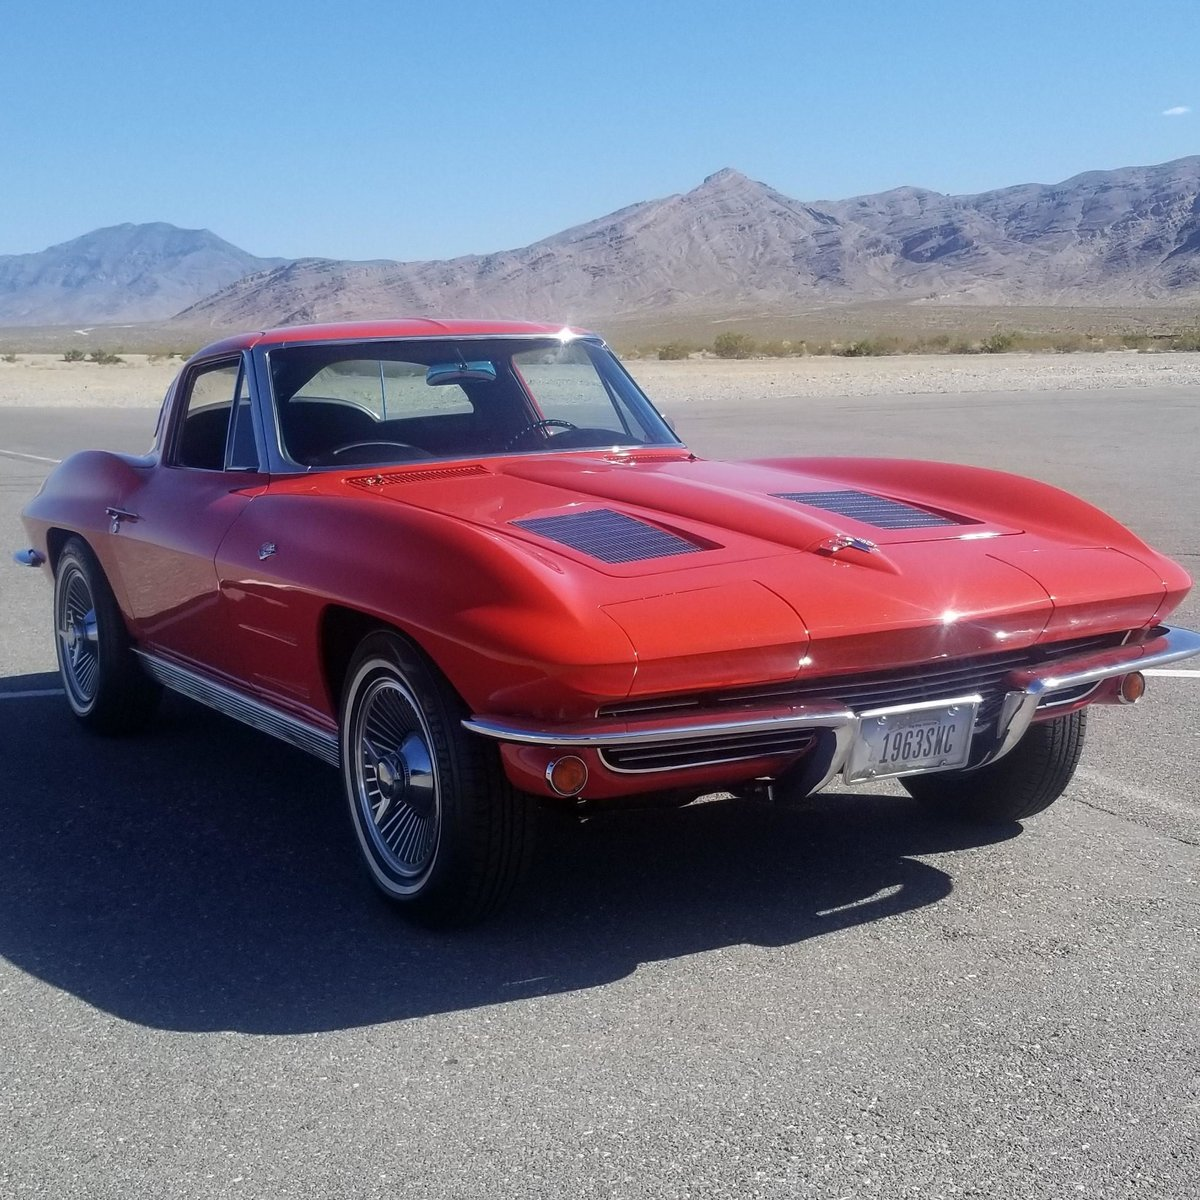 1963 Corvette Split(~)Window Coupe  327 4 speed AC $119.5k For Sale (picture 2 of 6)